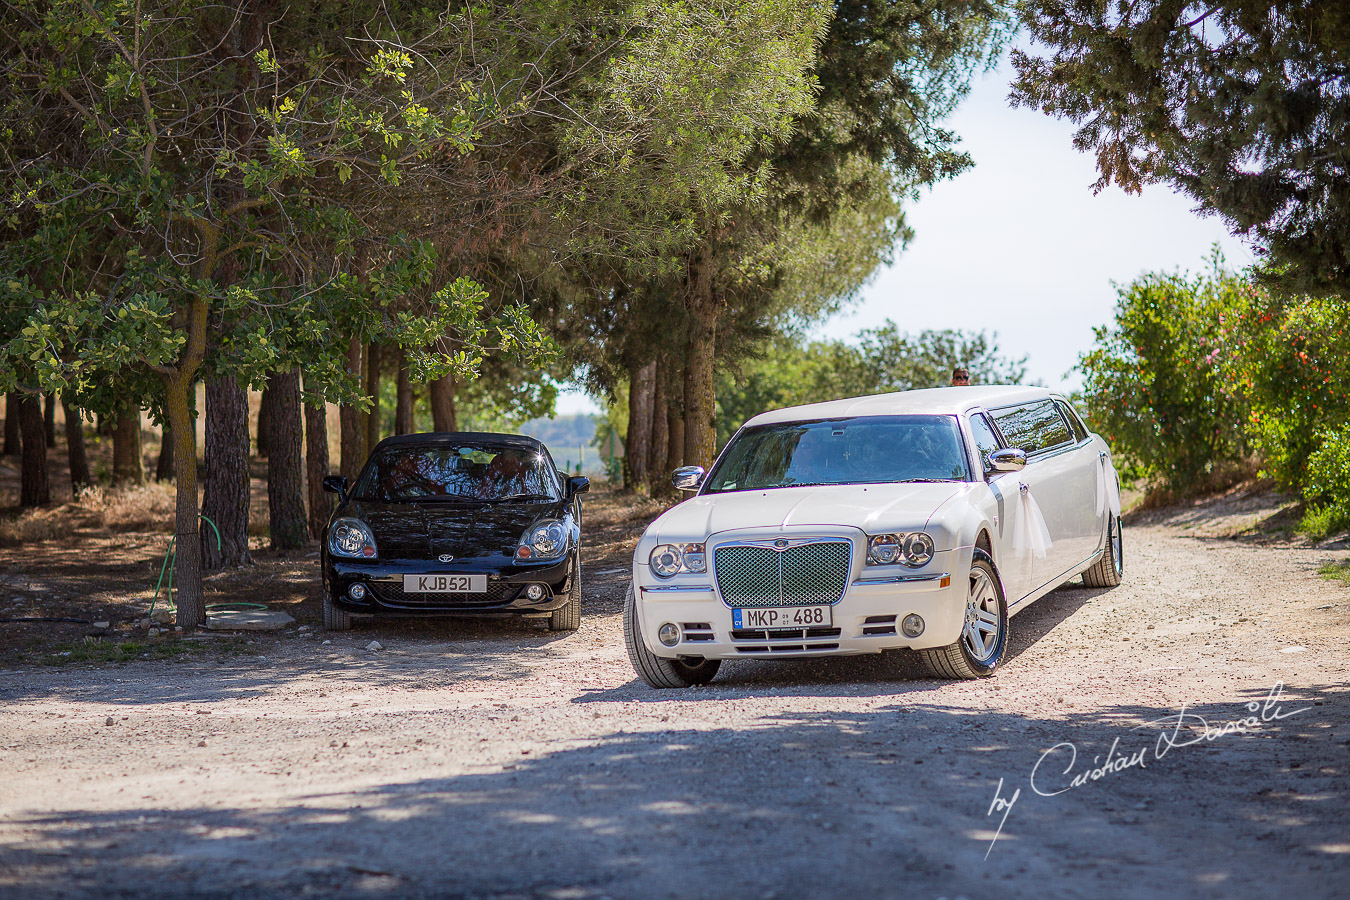 The arrival of the bridal limousine captured at a wedding at Minthis Hills in Cyprus, by Cristian Dascalu.